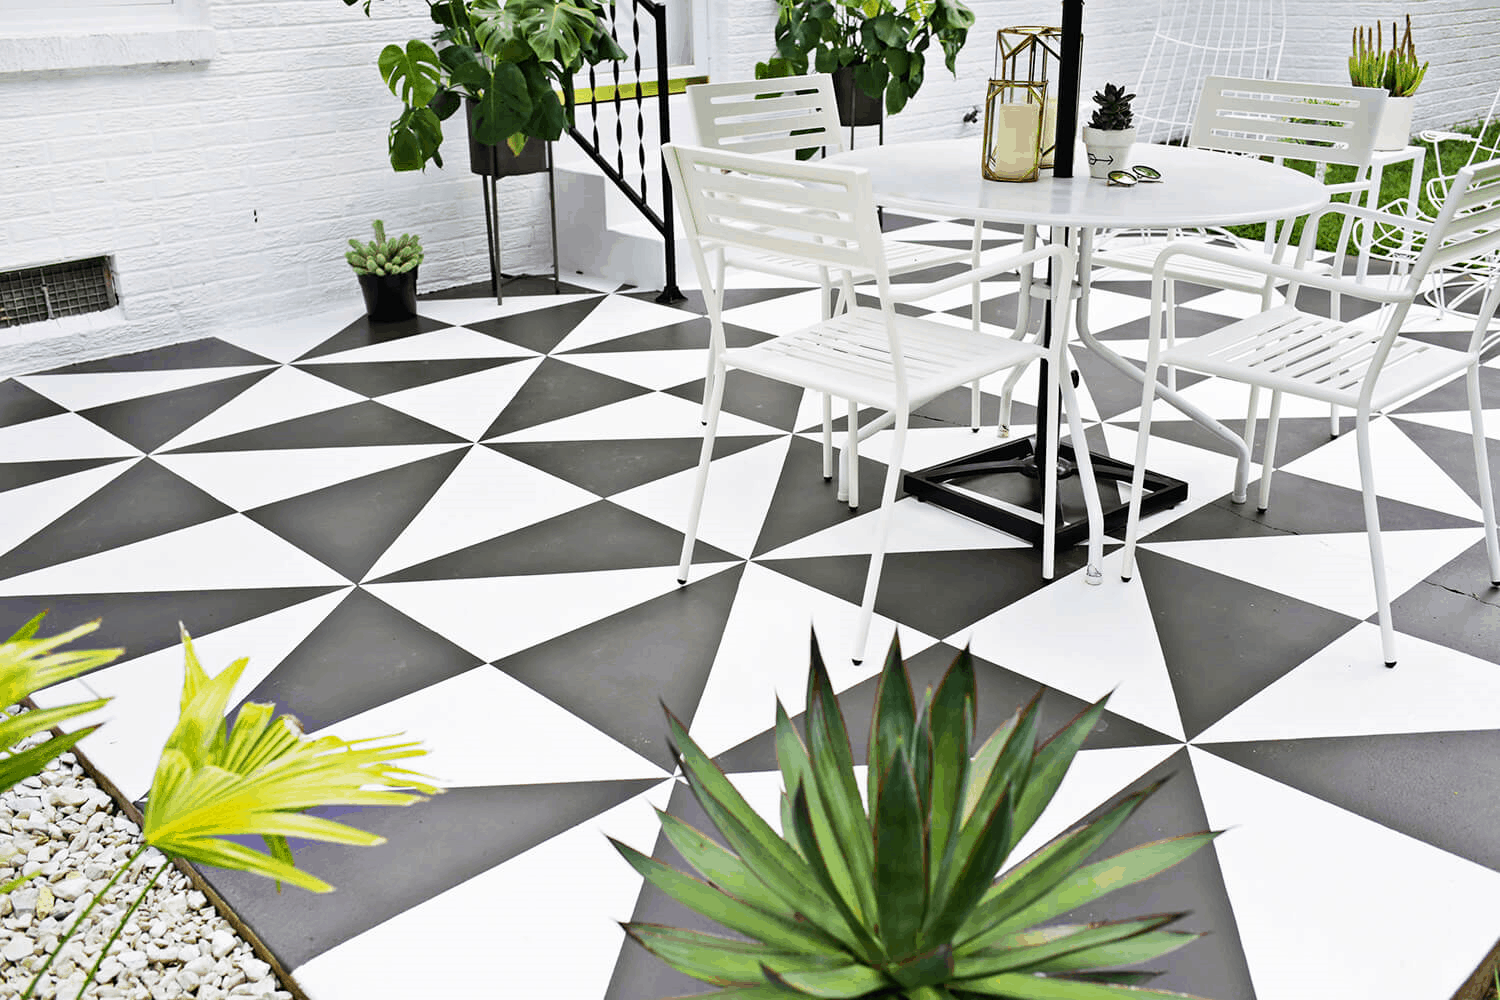 patio with pattern flooringg How To Make The Most Out Of A Small Patio Space